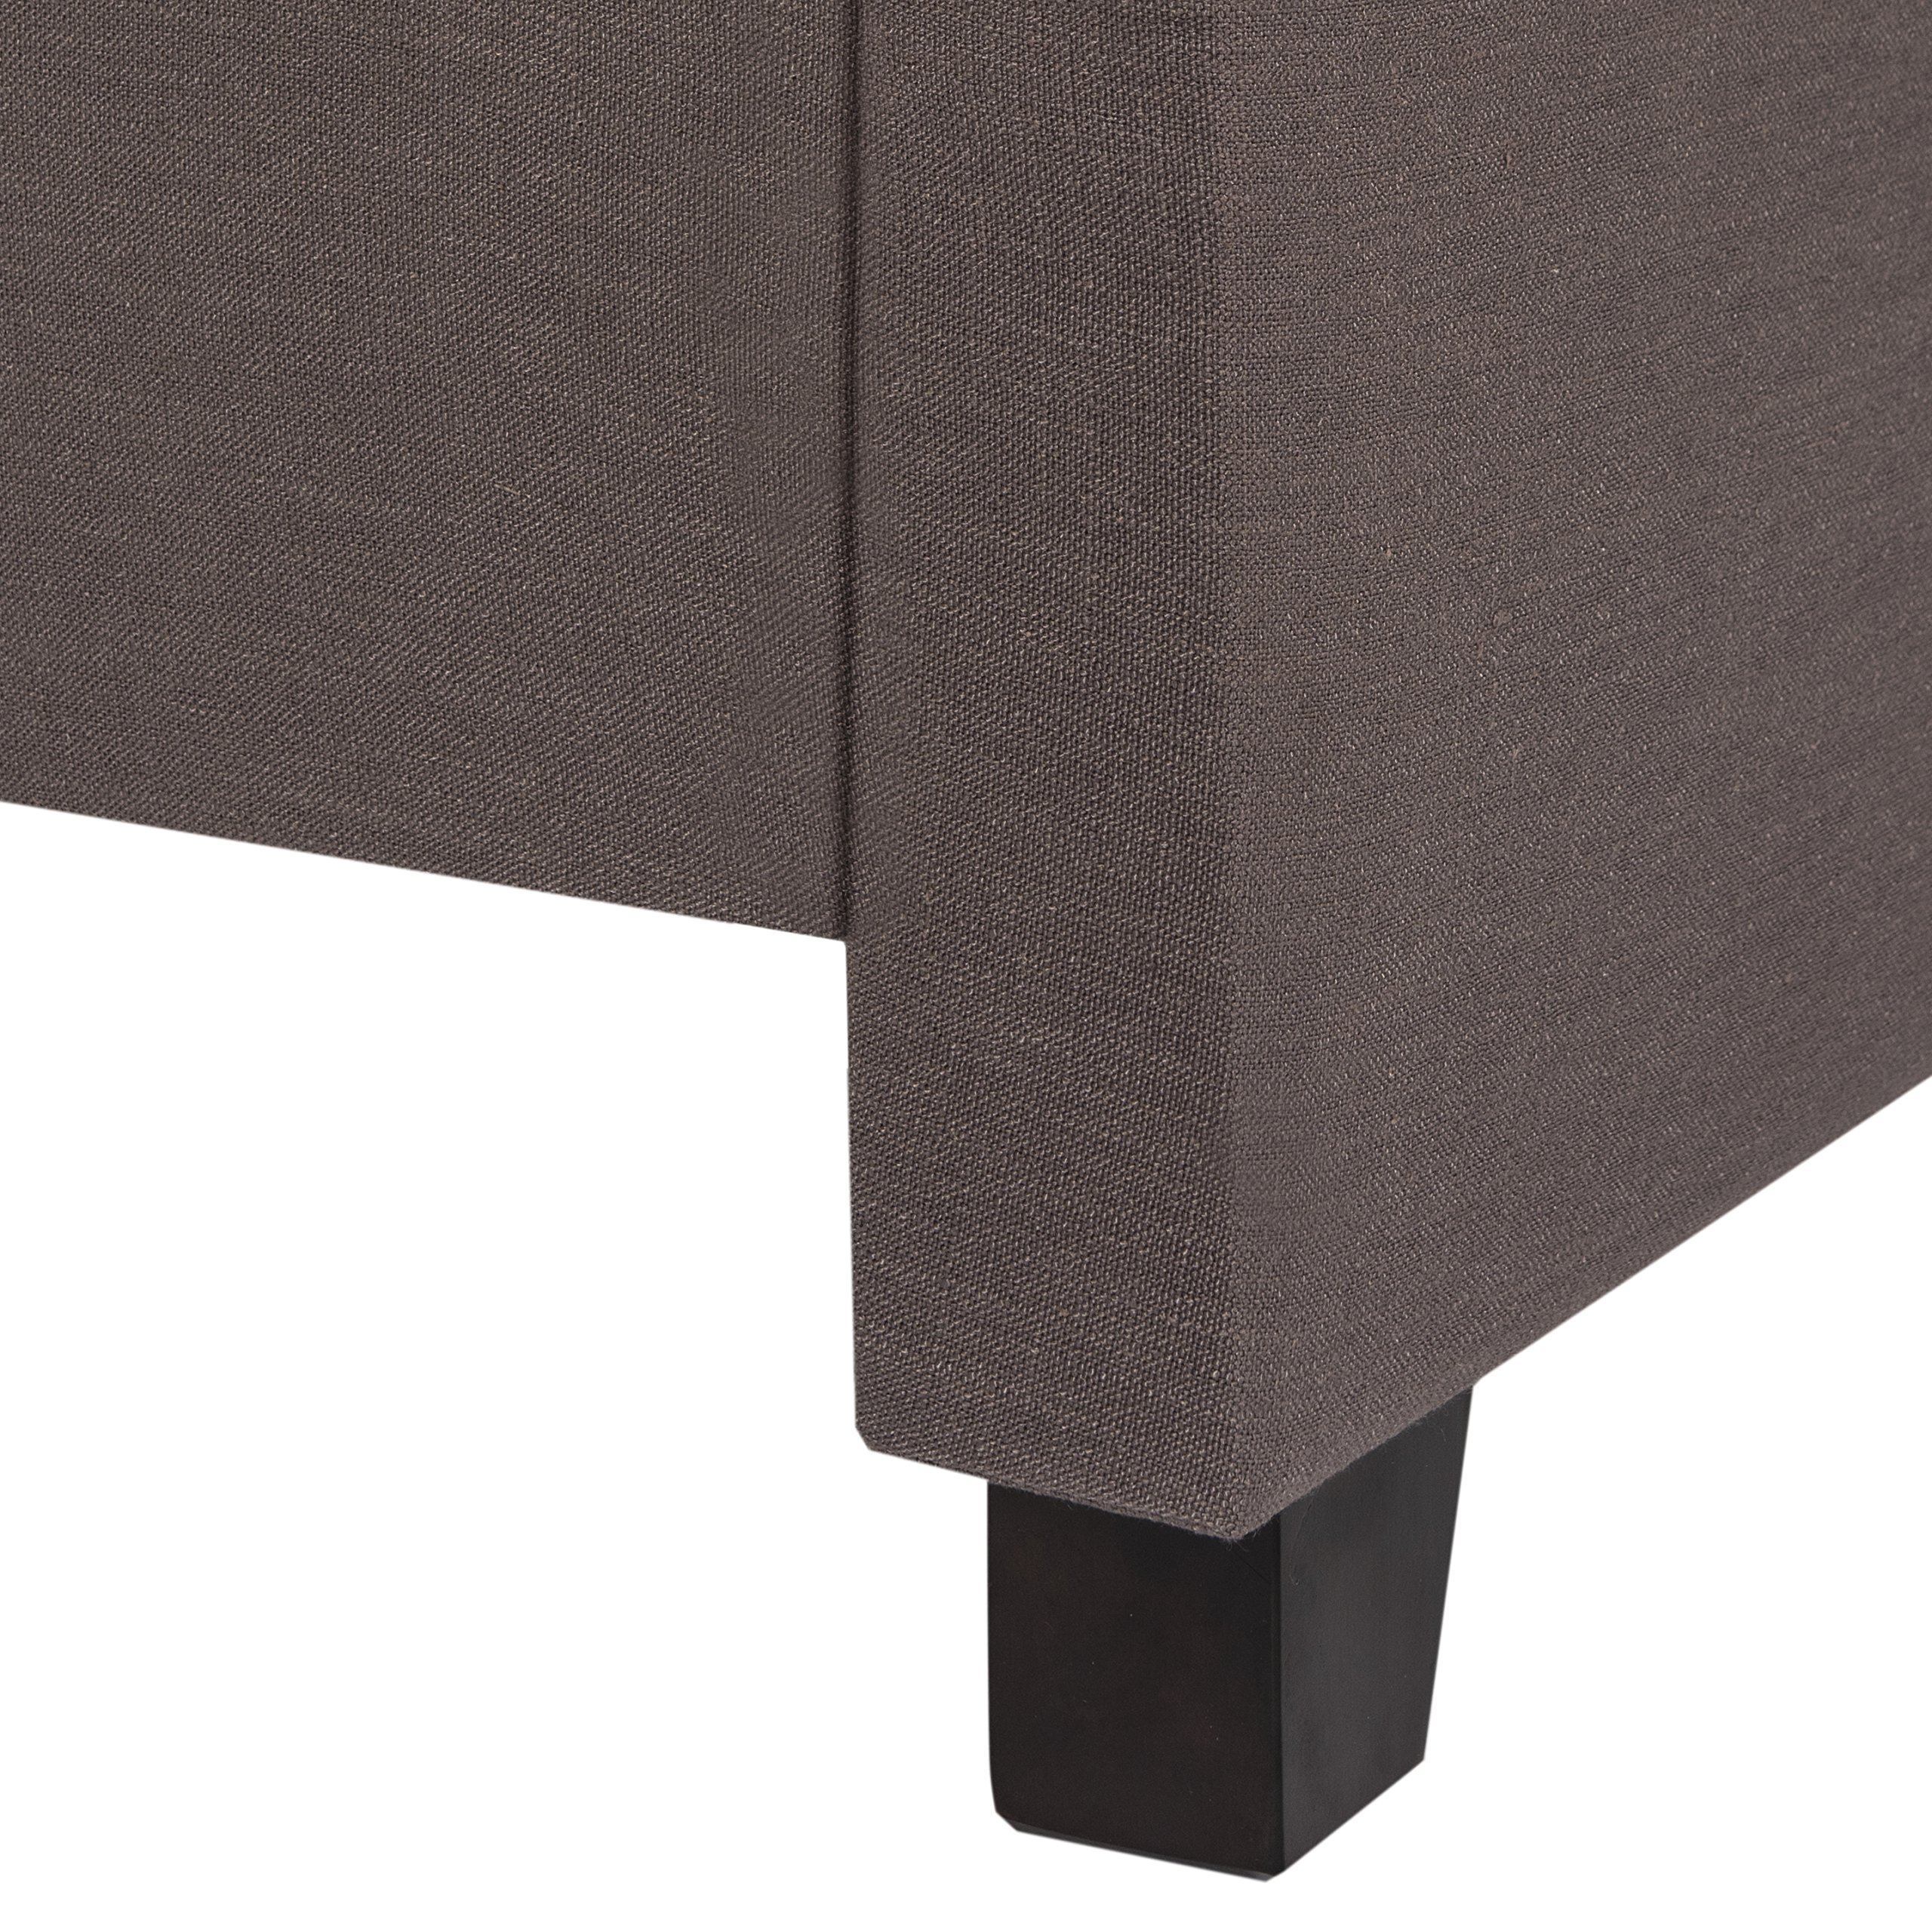 Safavieh Home Collection Theron Dark Taupe & Espresso Bed, Queen